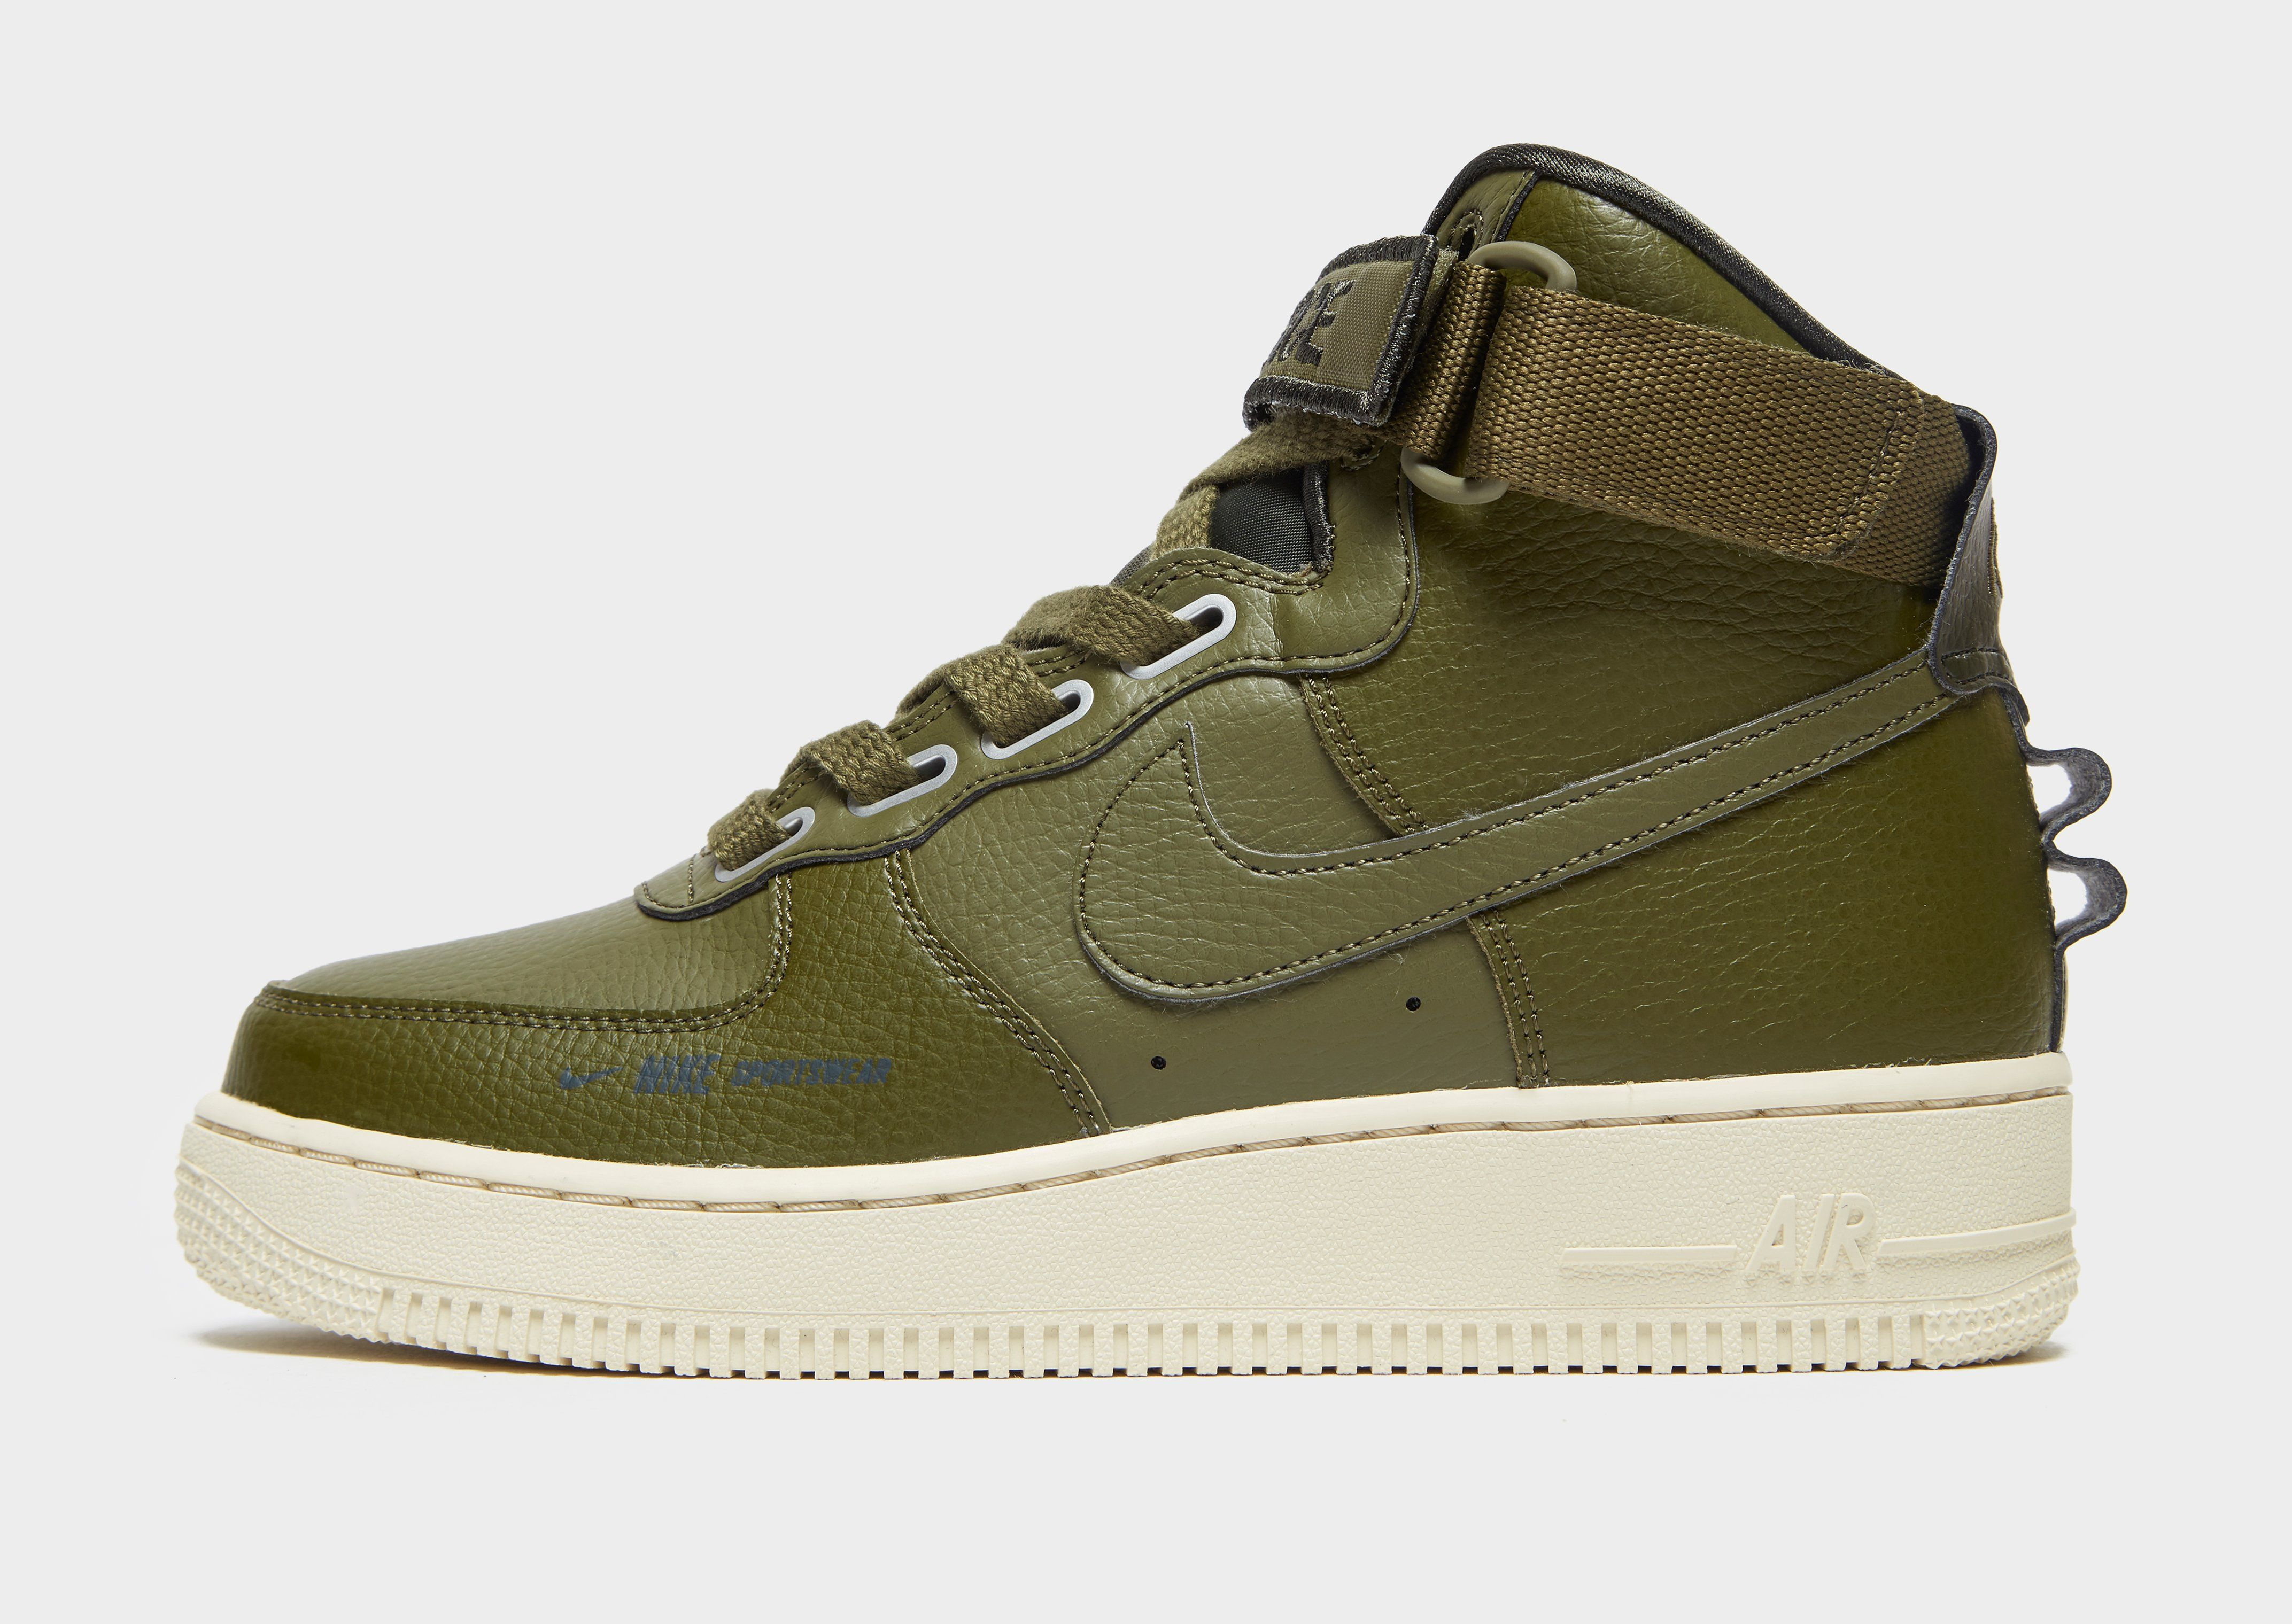 half off 0273a 9966b Nike Air Force 1 High Utility para mujer   JD Sports